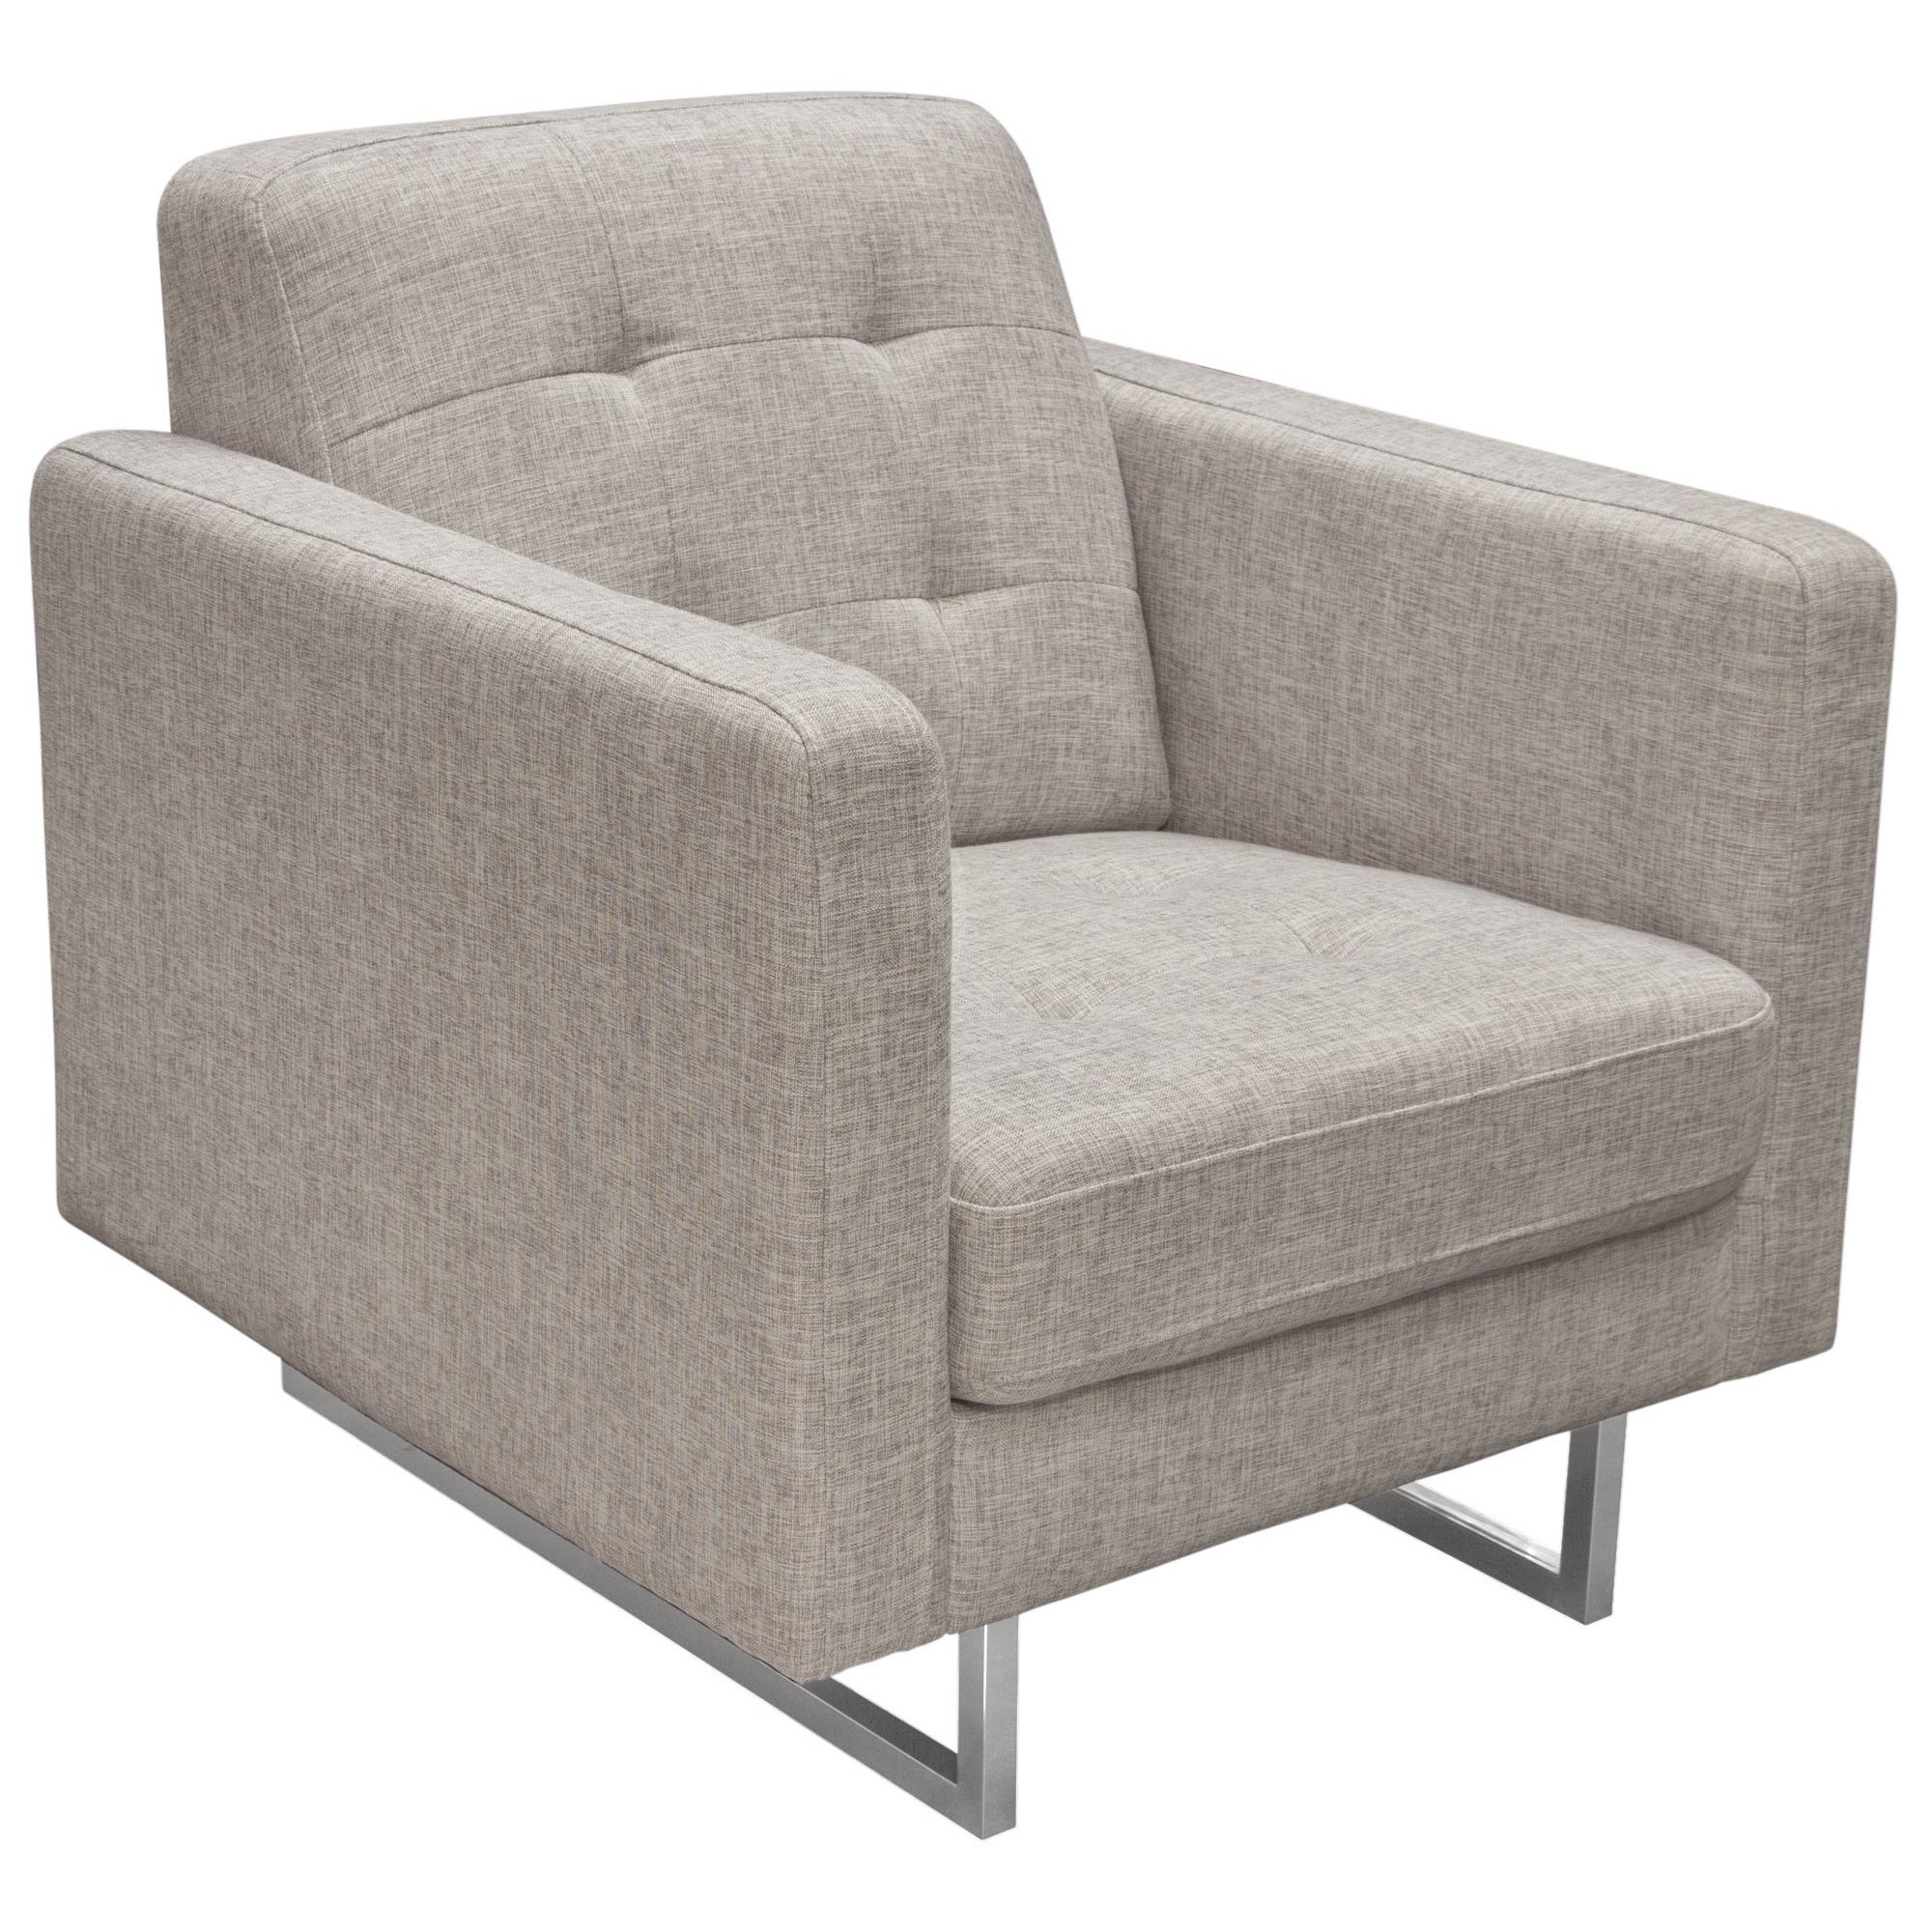 Opus Chair by Diamond Sofa at Red Knot